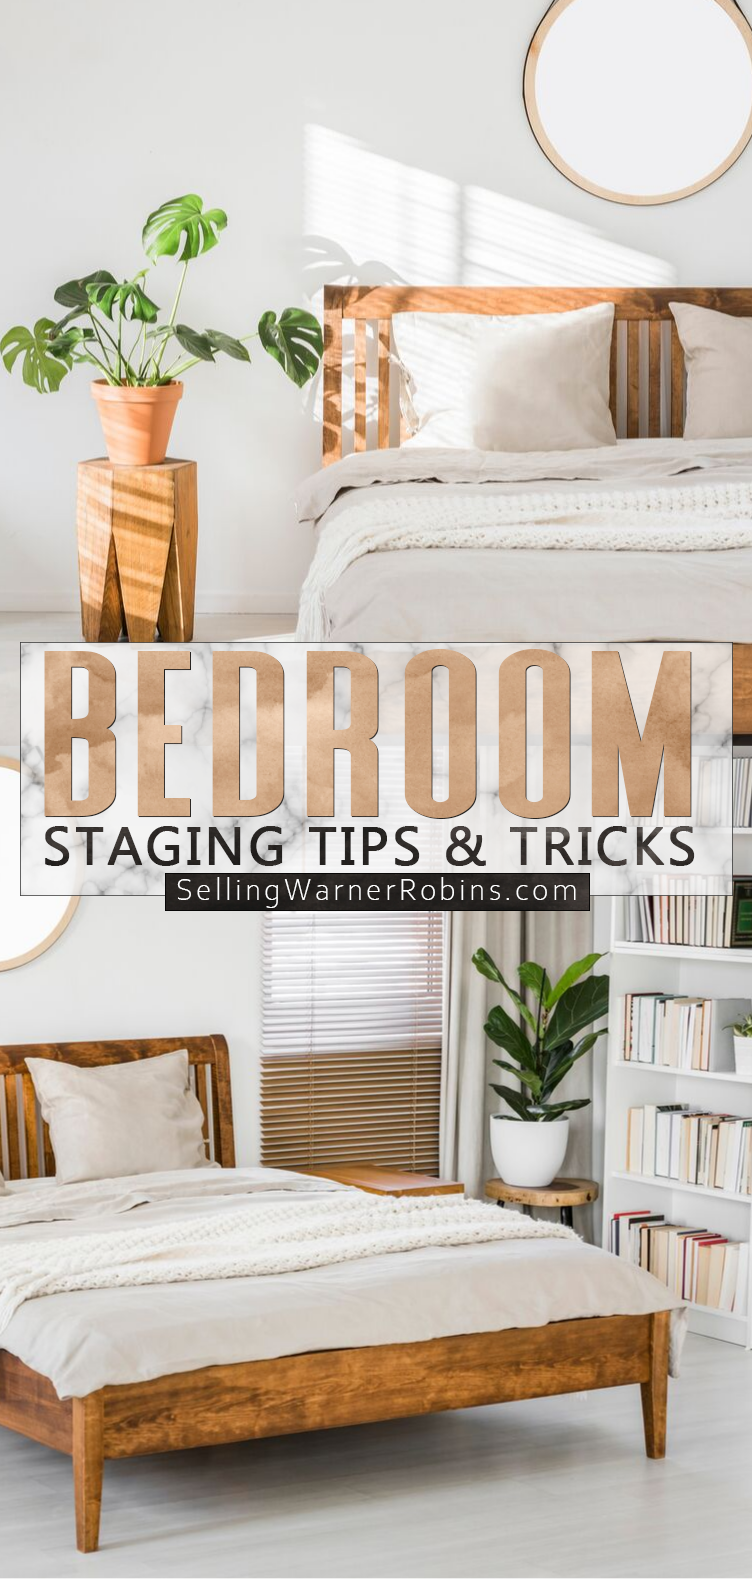 How To Stage A Bedroom To Sell Your Home (With images